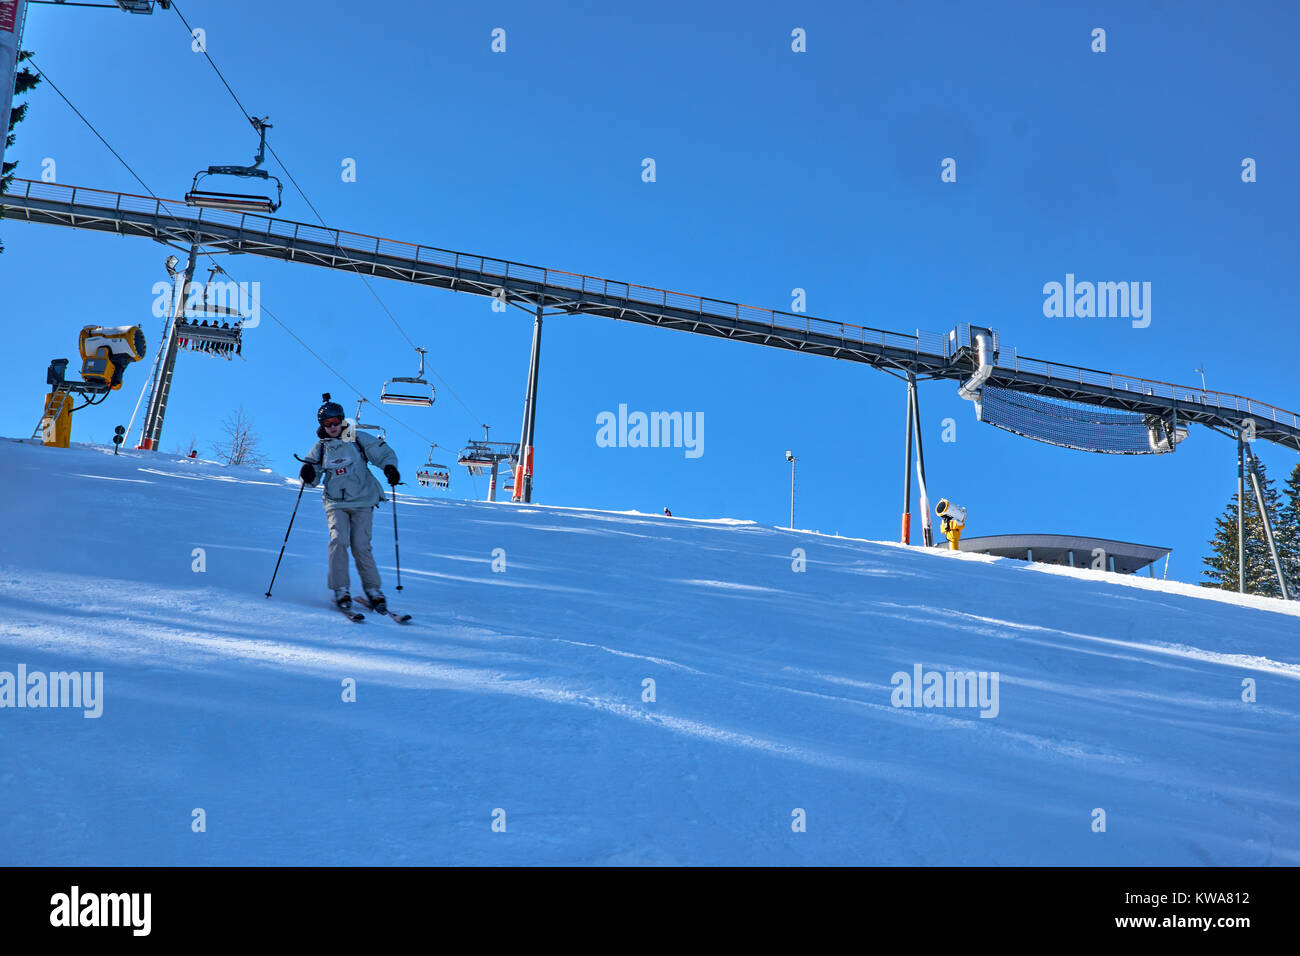 WINTERBERG, GERMANY - FEBRUARY 14, 2017: sat Ski Carousel Winterberg - Stock Image